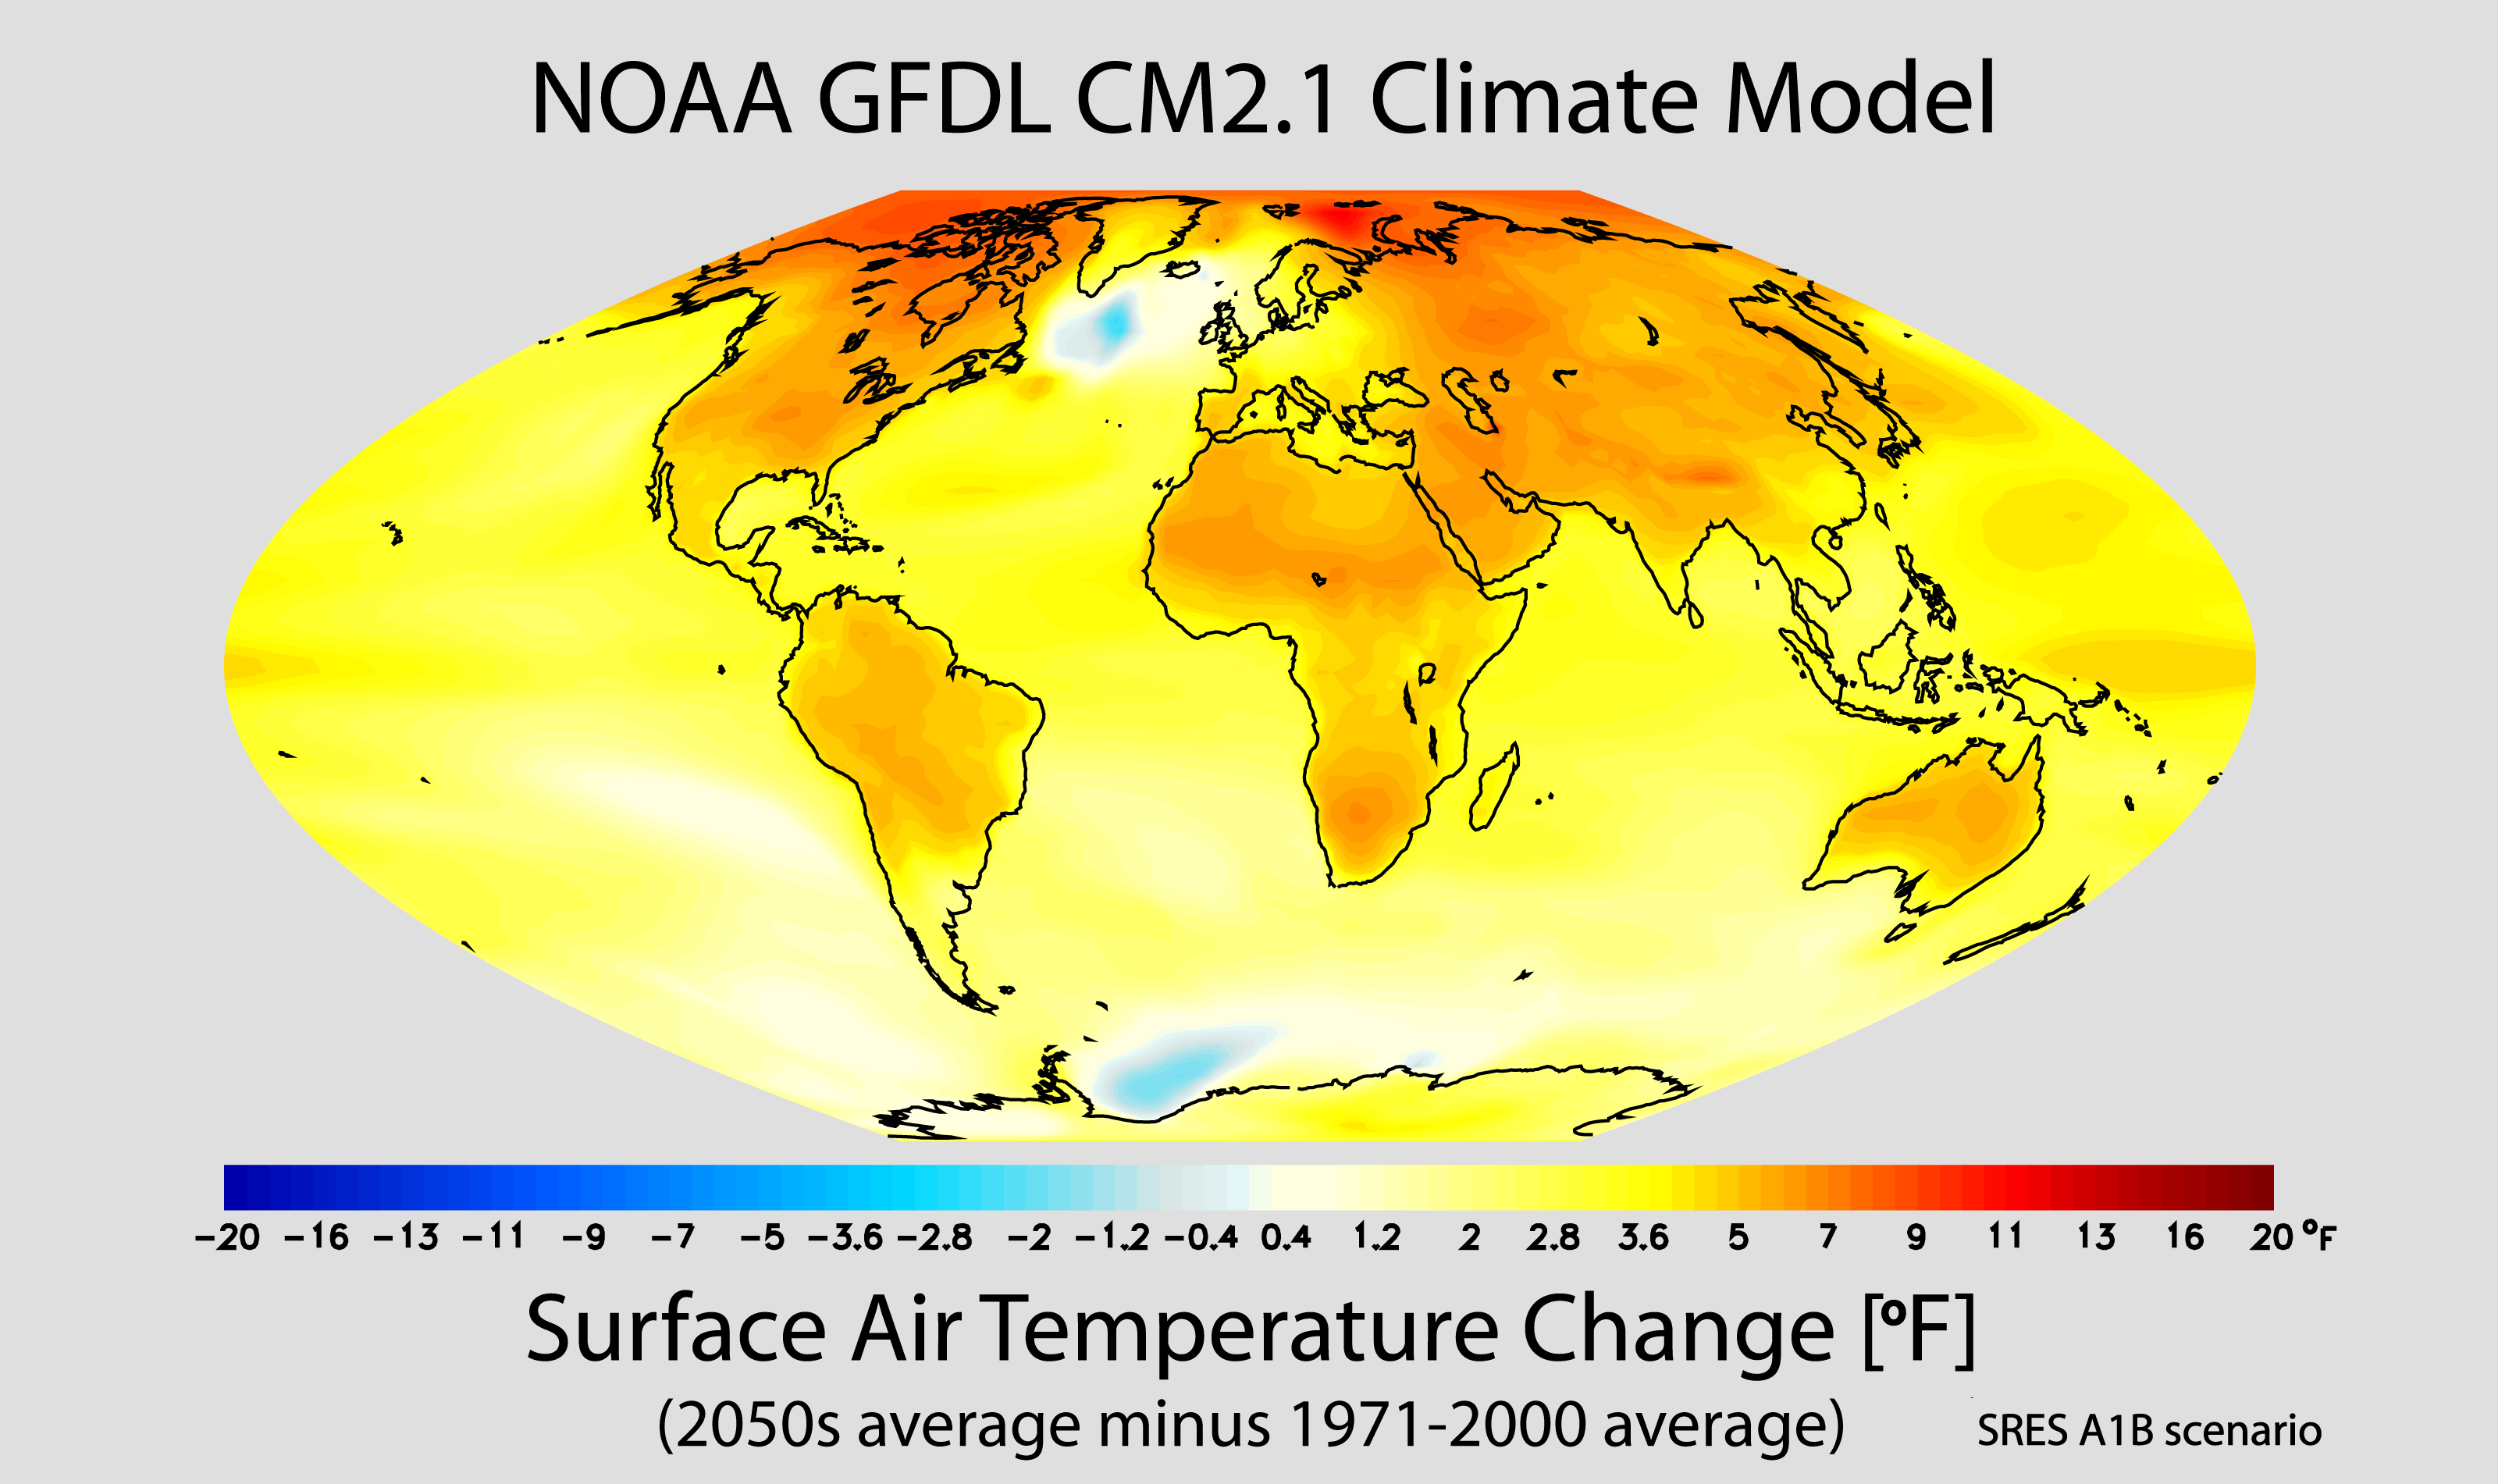 Projected_change_in_annual_mean_surface_air_temperature_from_the_late_20th_century_to_the_middle_21st_century,_based_on_SRES_emissions_scenario_A1B